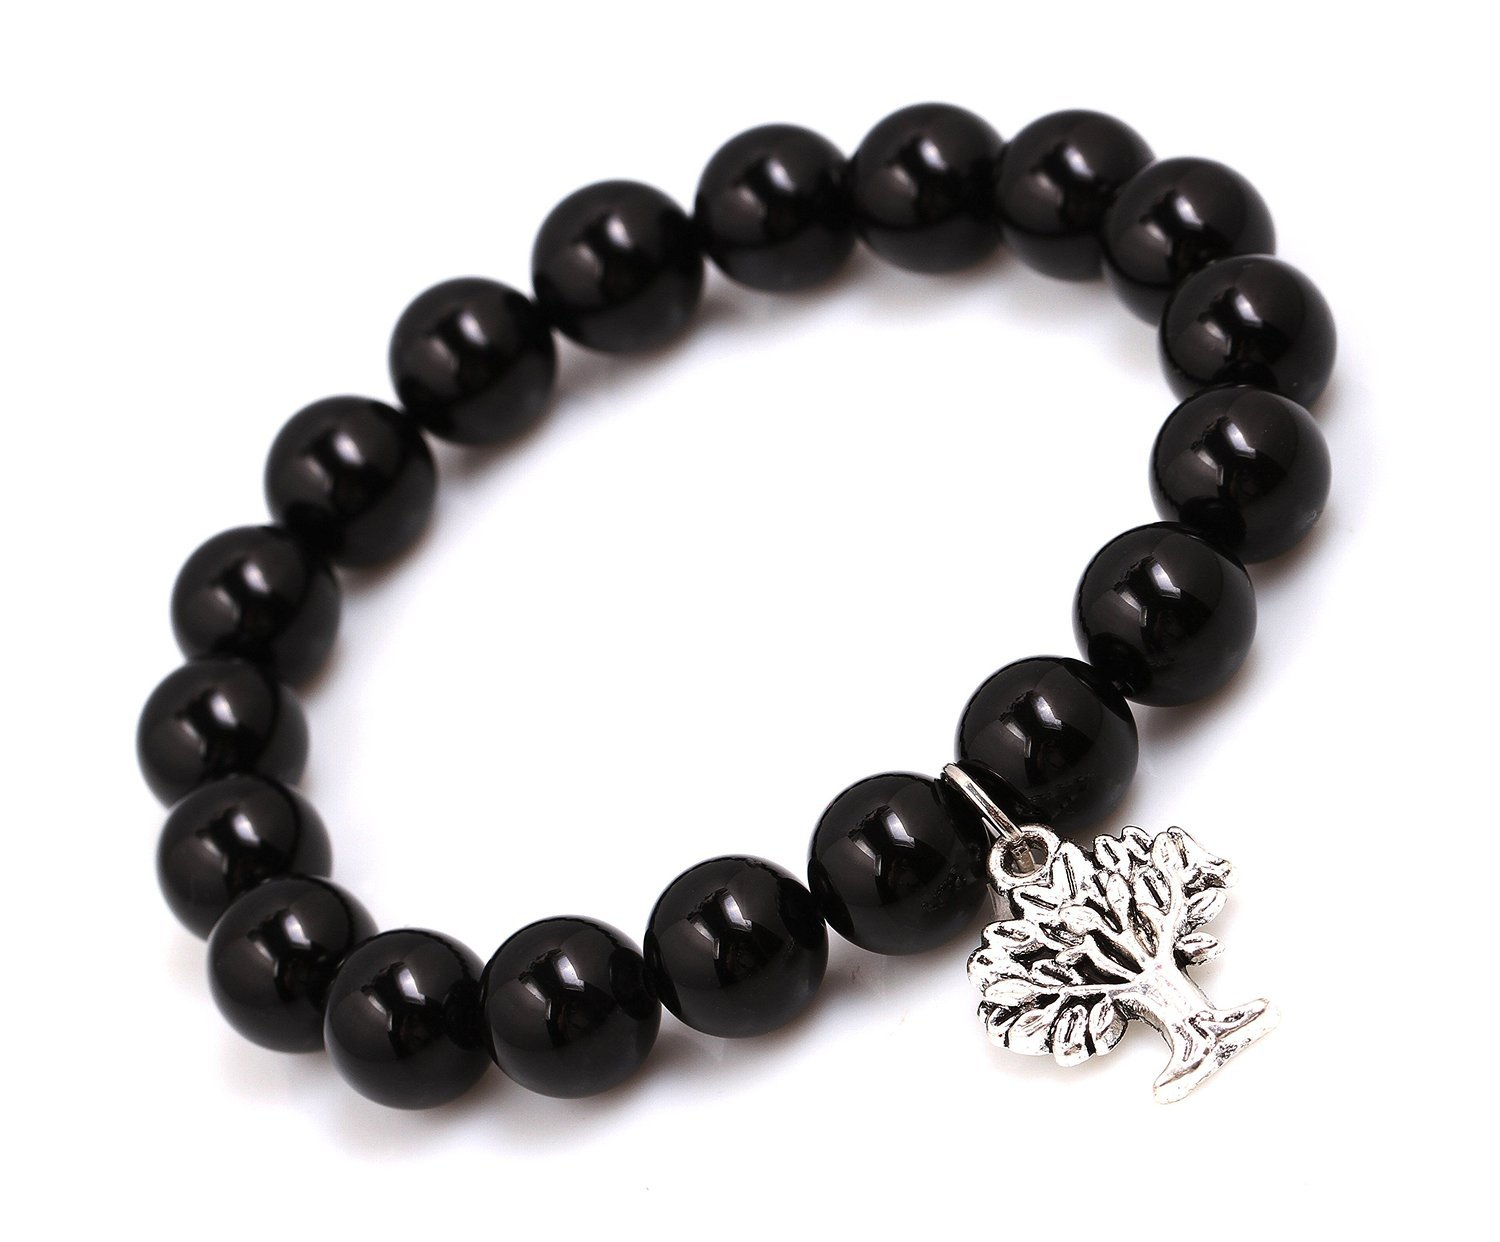 Primary image for Black Agate Energy Beads Bracelet; Men Woman Yoga Buddha Prayer Silver Wish Tree